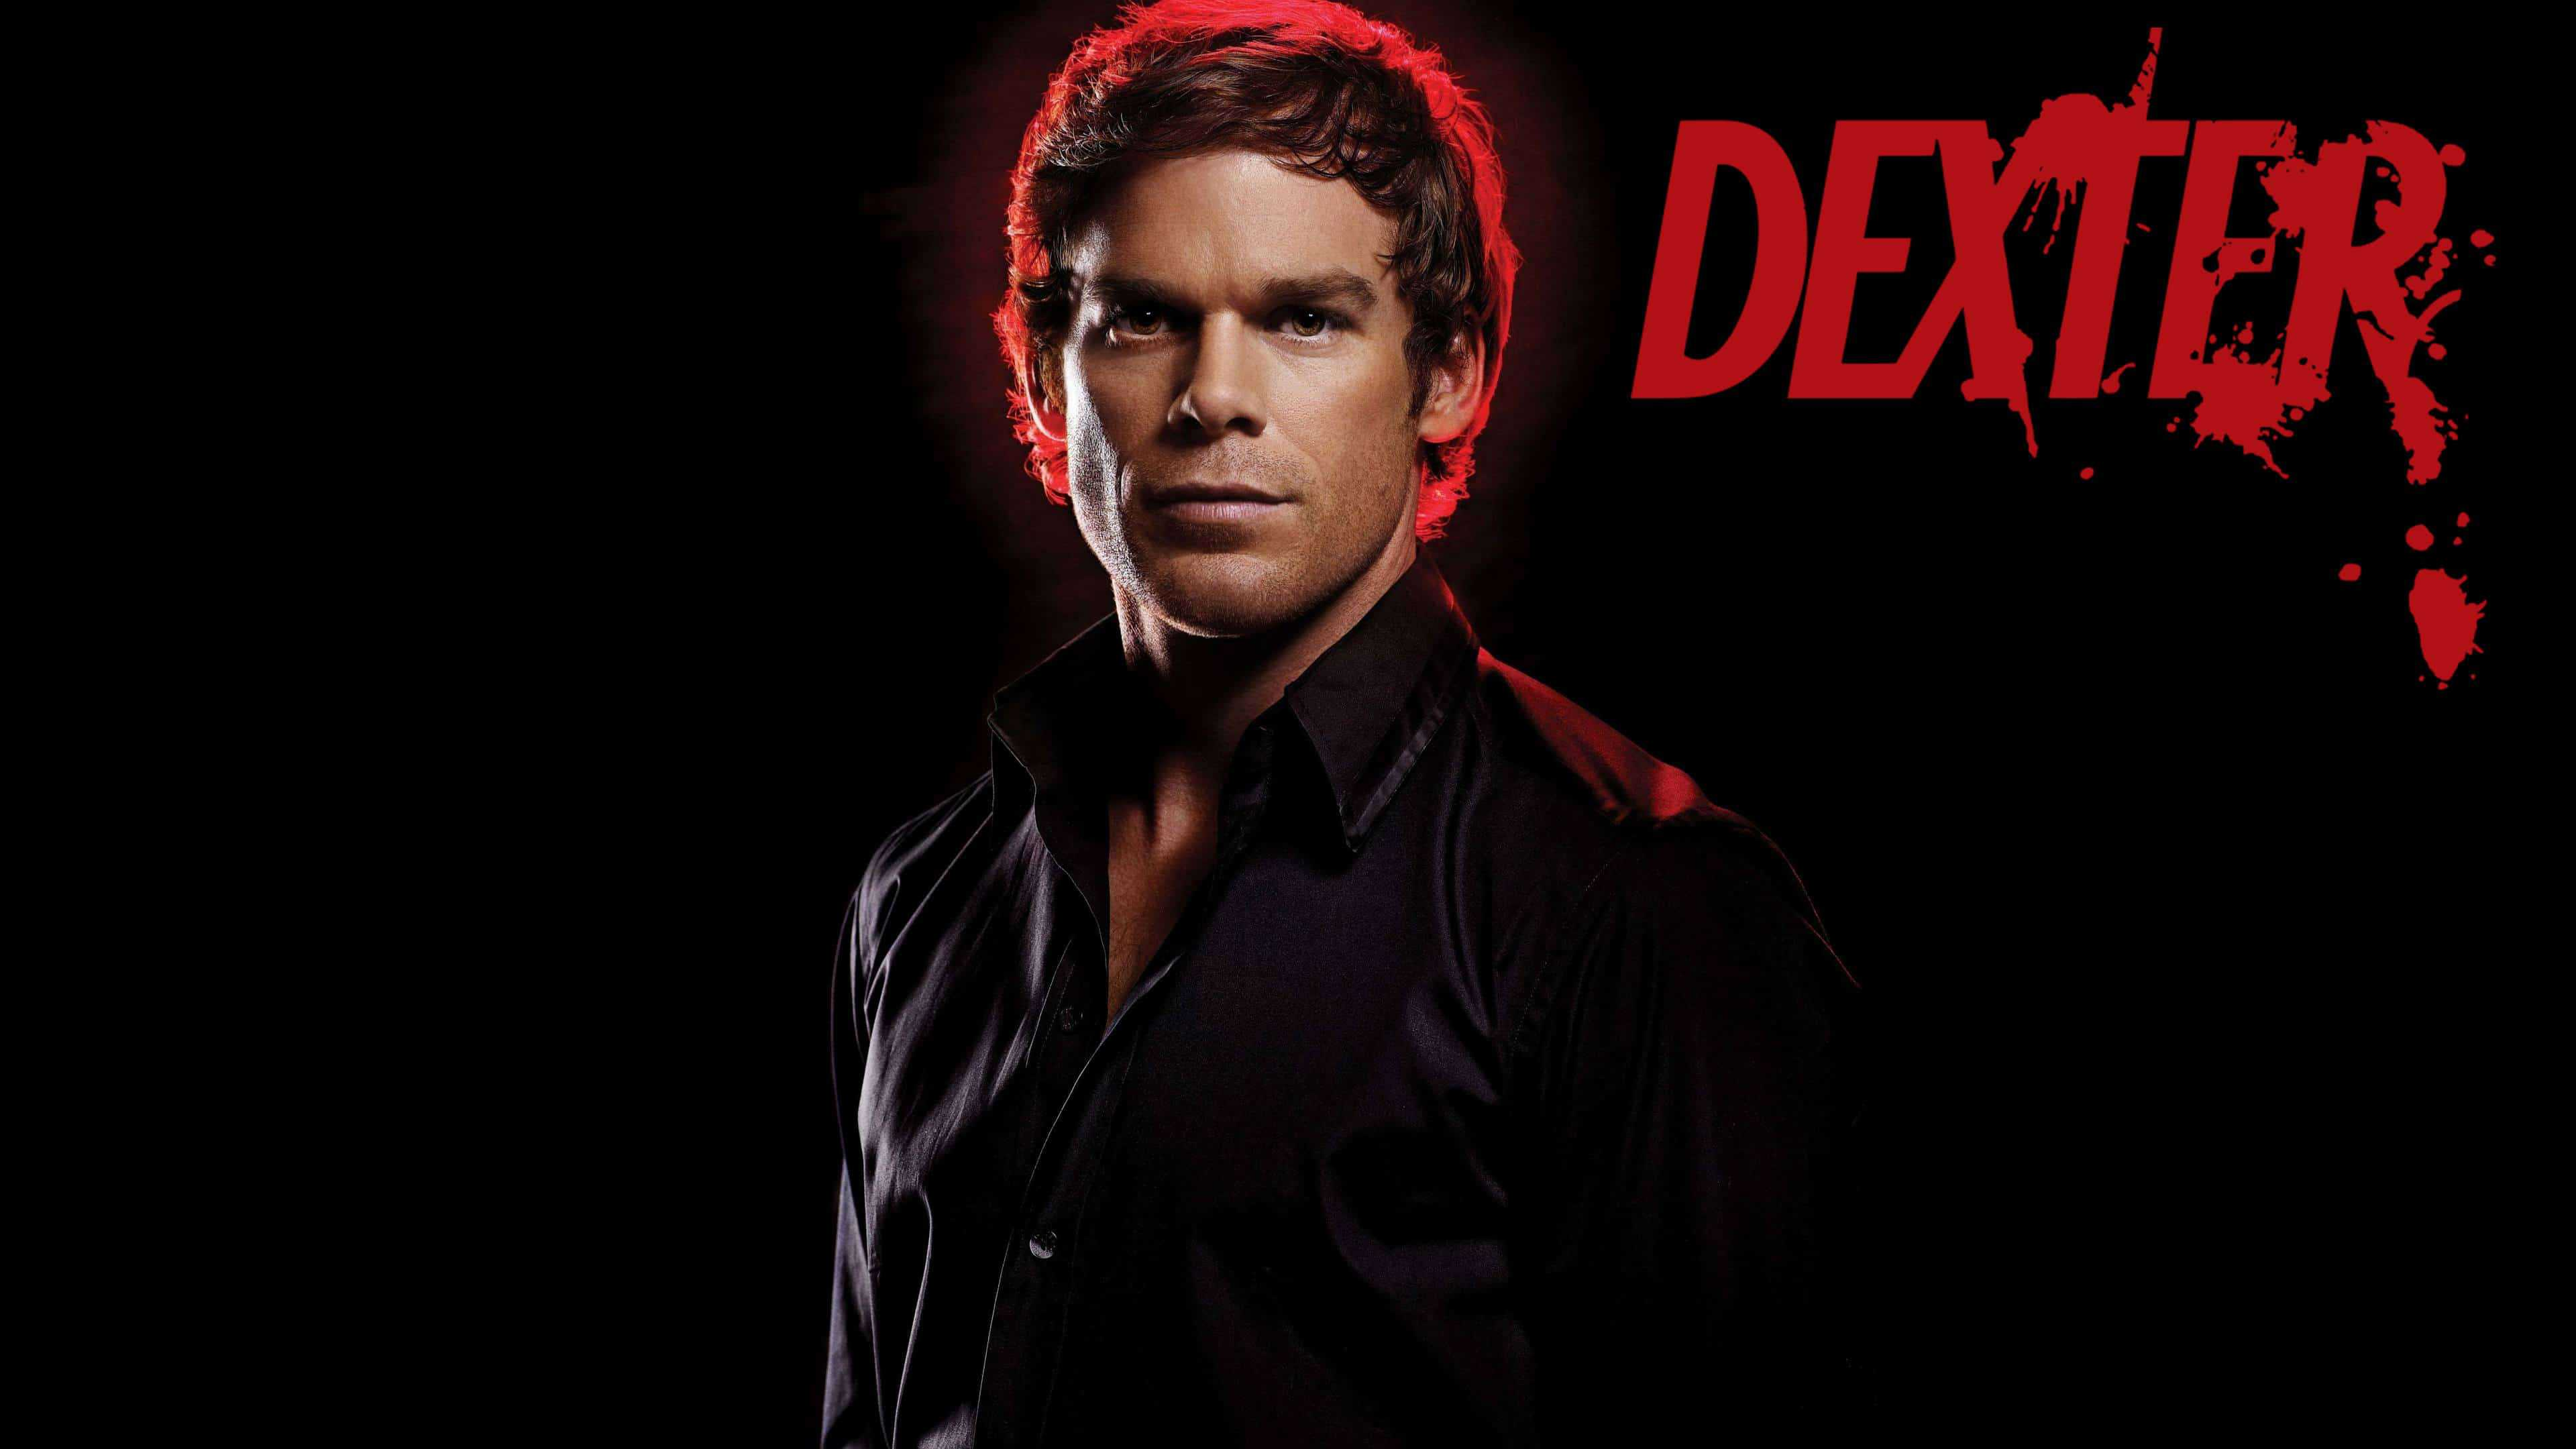 dexter morgan uhd 4k wallpaper